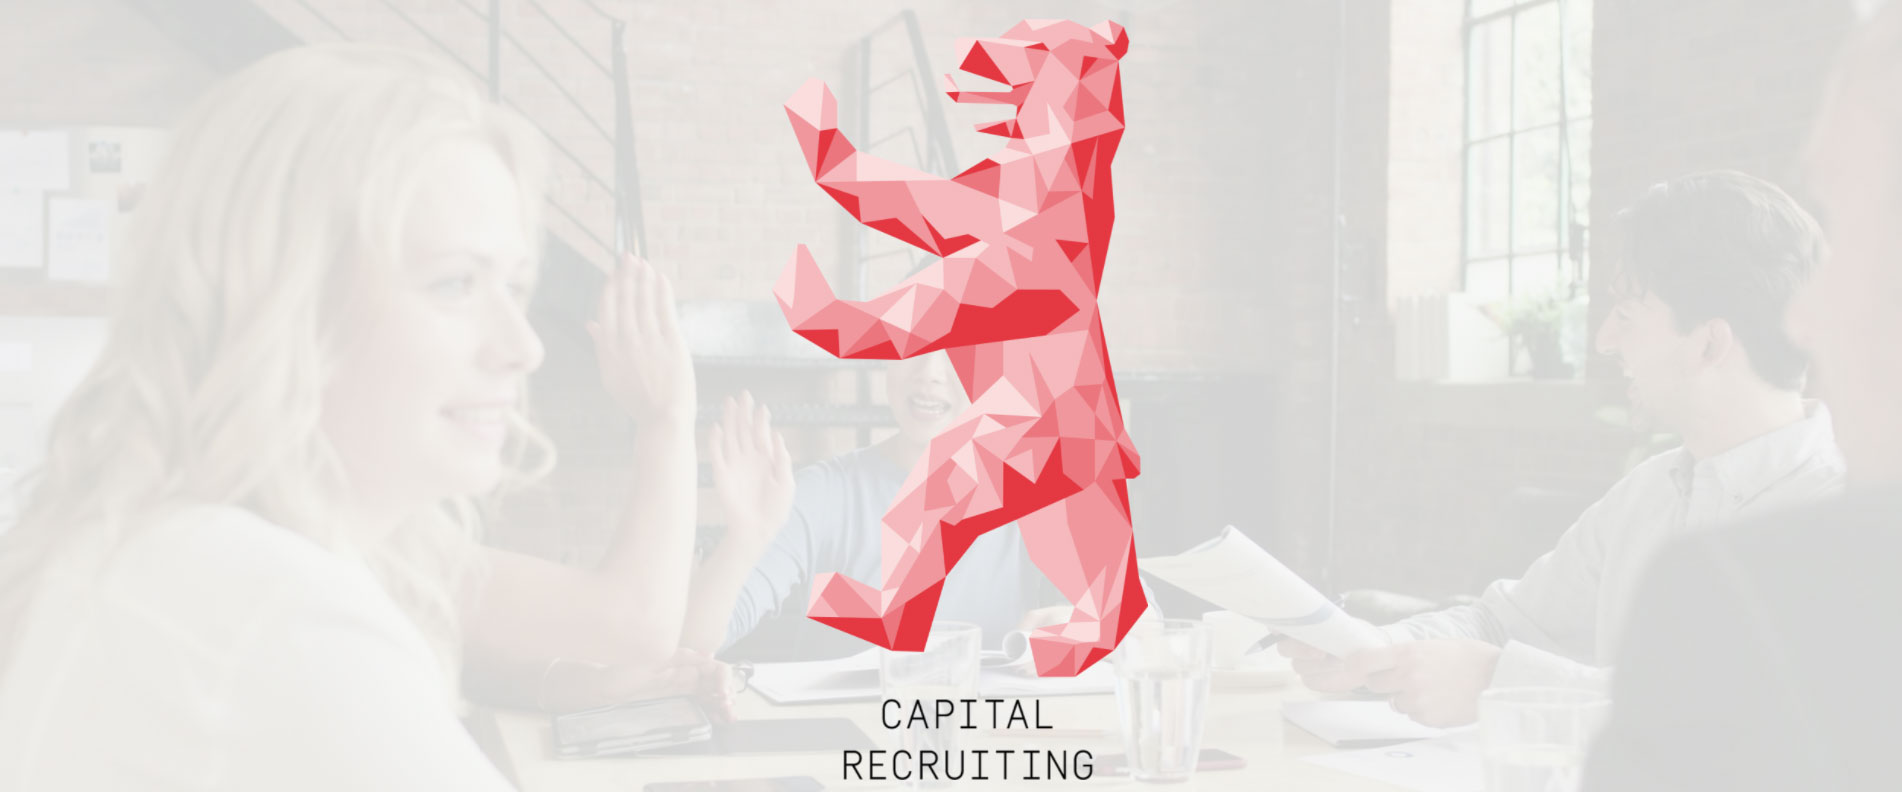 Capital Recruiting